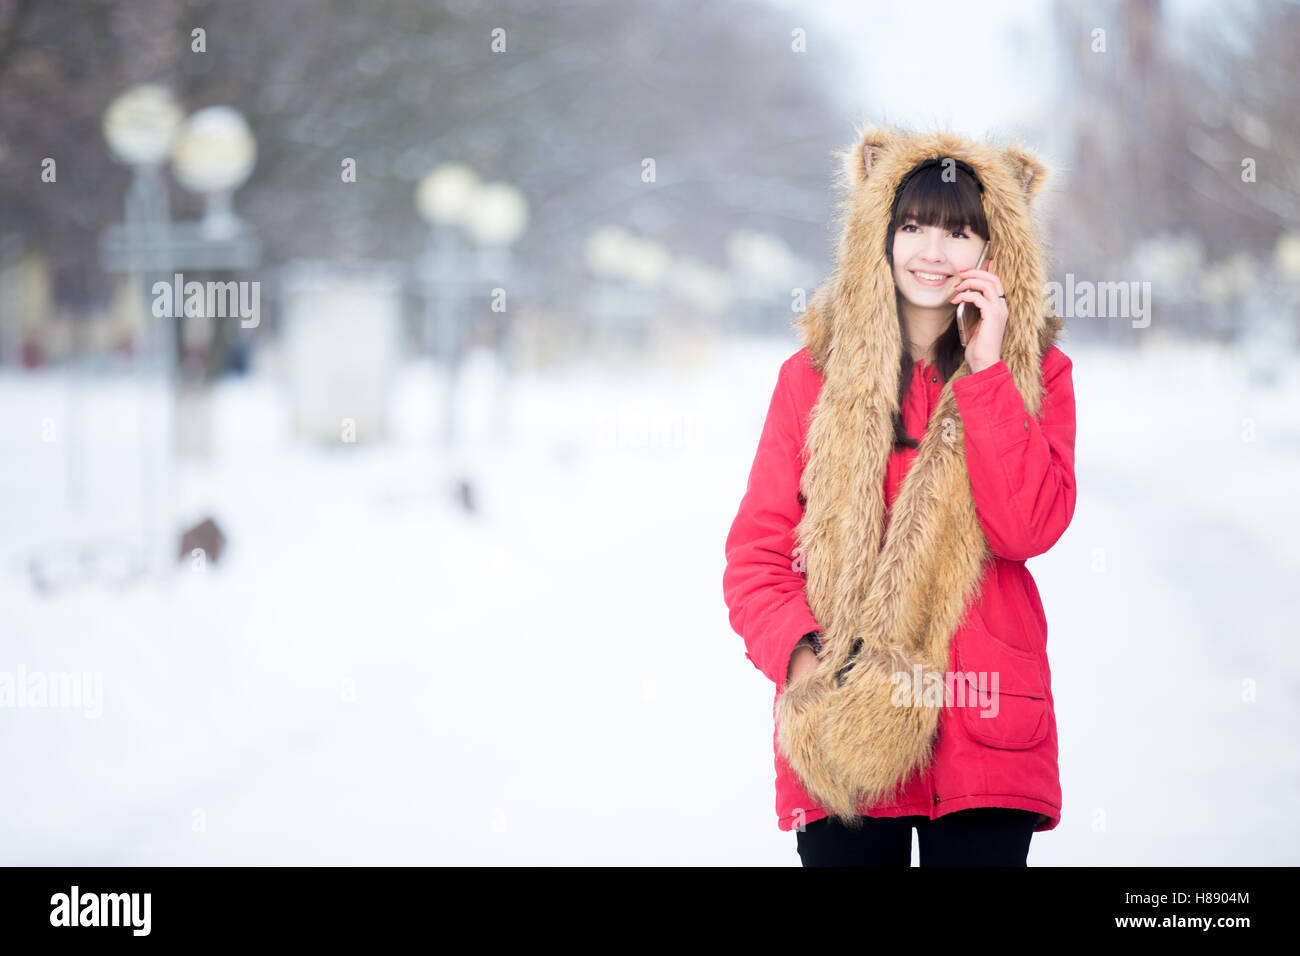 Young woman talking on phone outdoors in wintertime - Stock Image